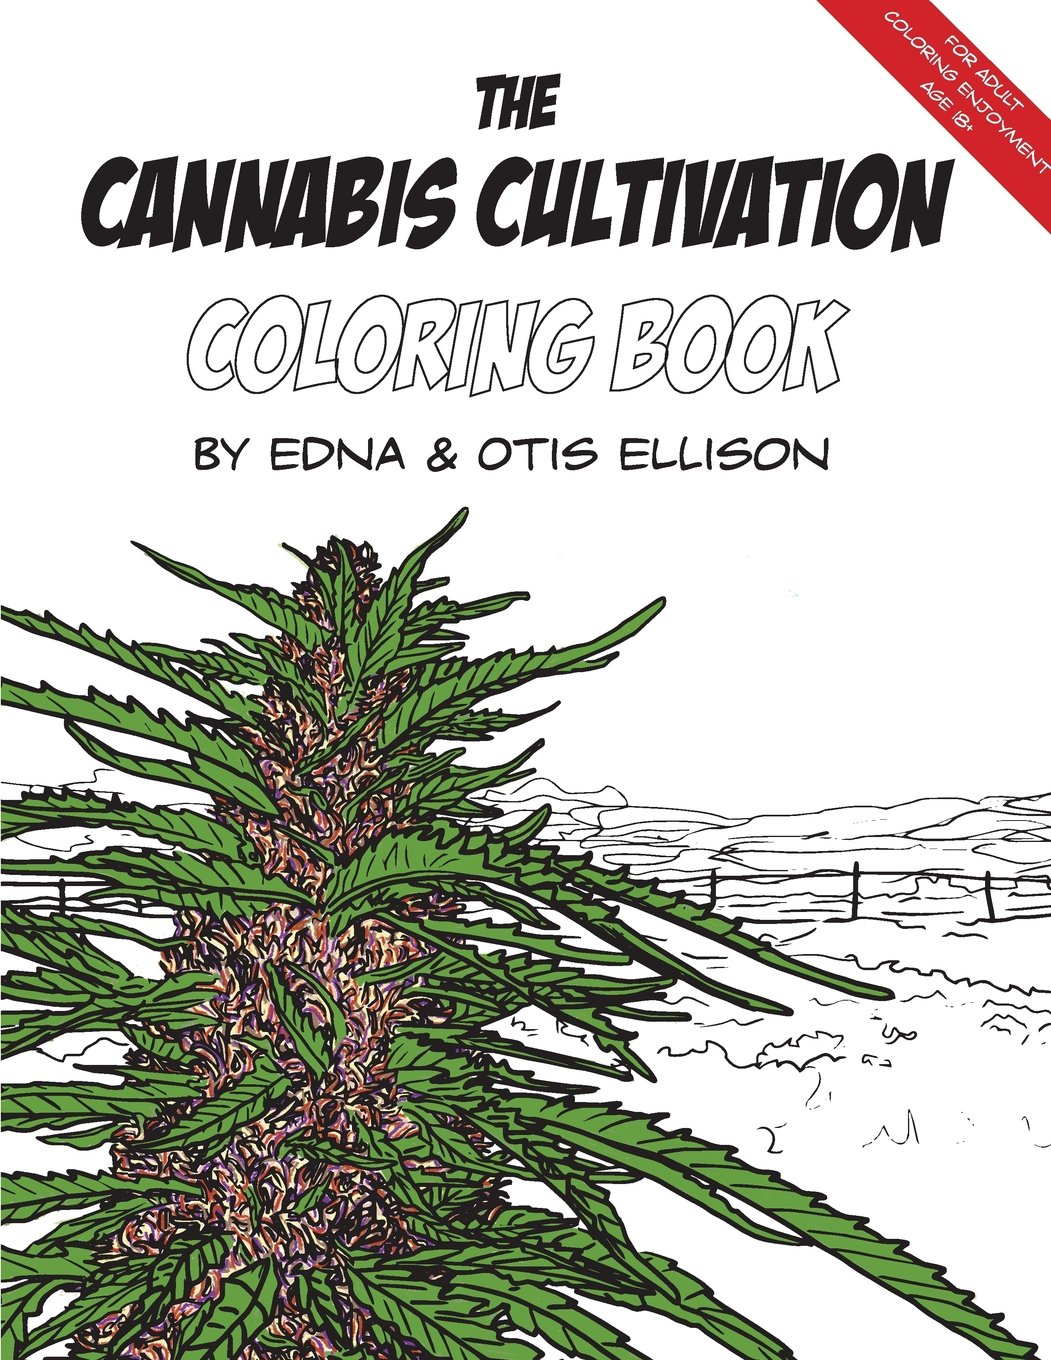 The Cannabis Cultivation Coloring Book